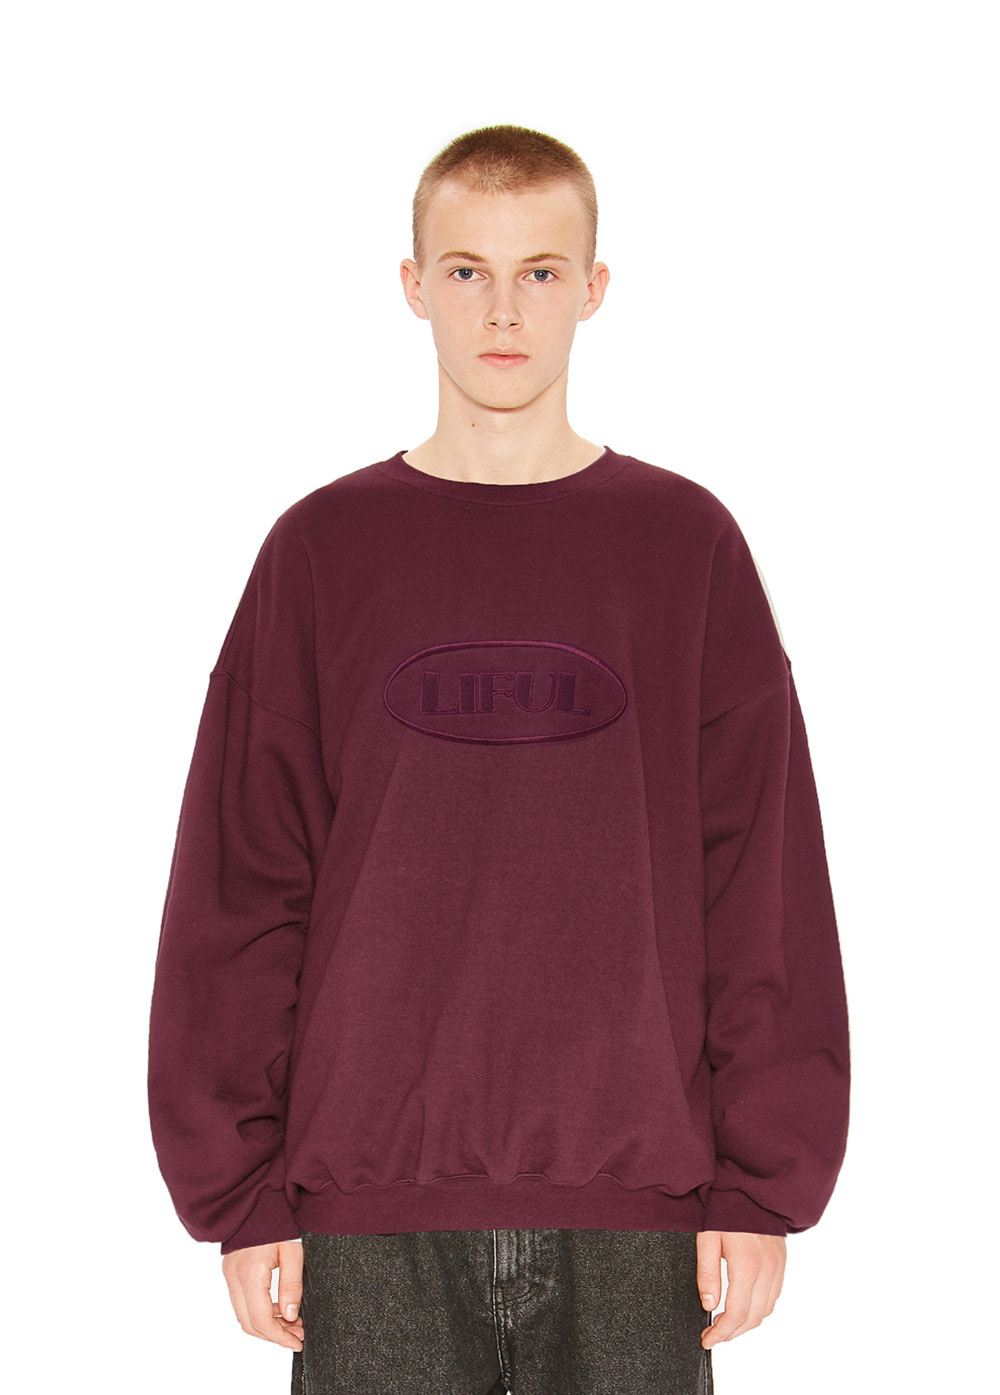 OVAL LOGO SWEATSHIRT burgundy